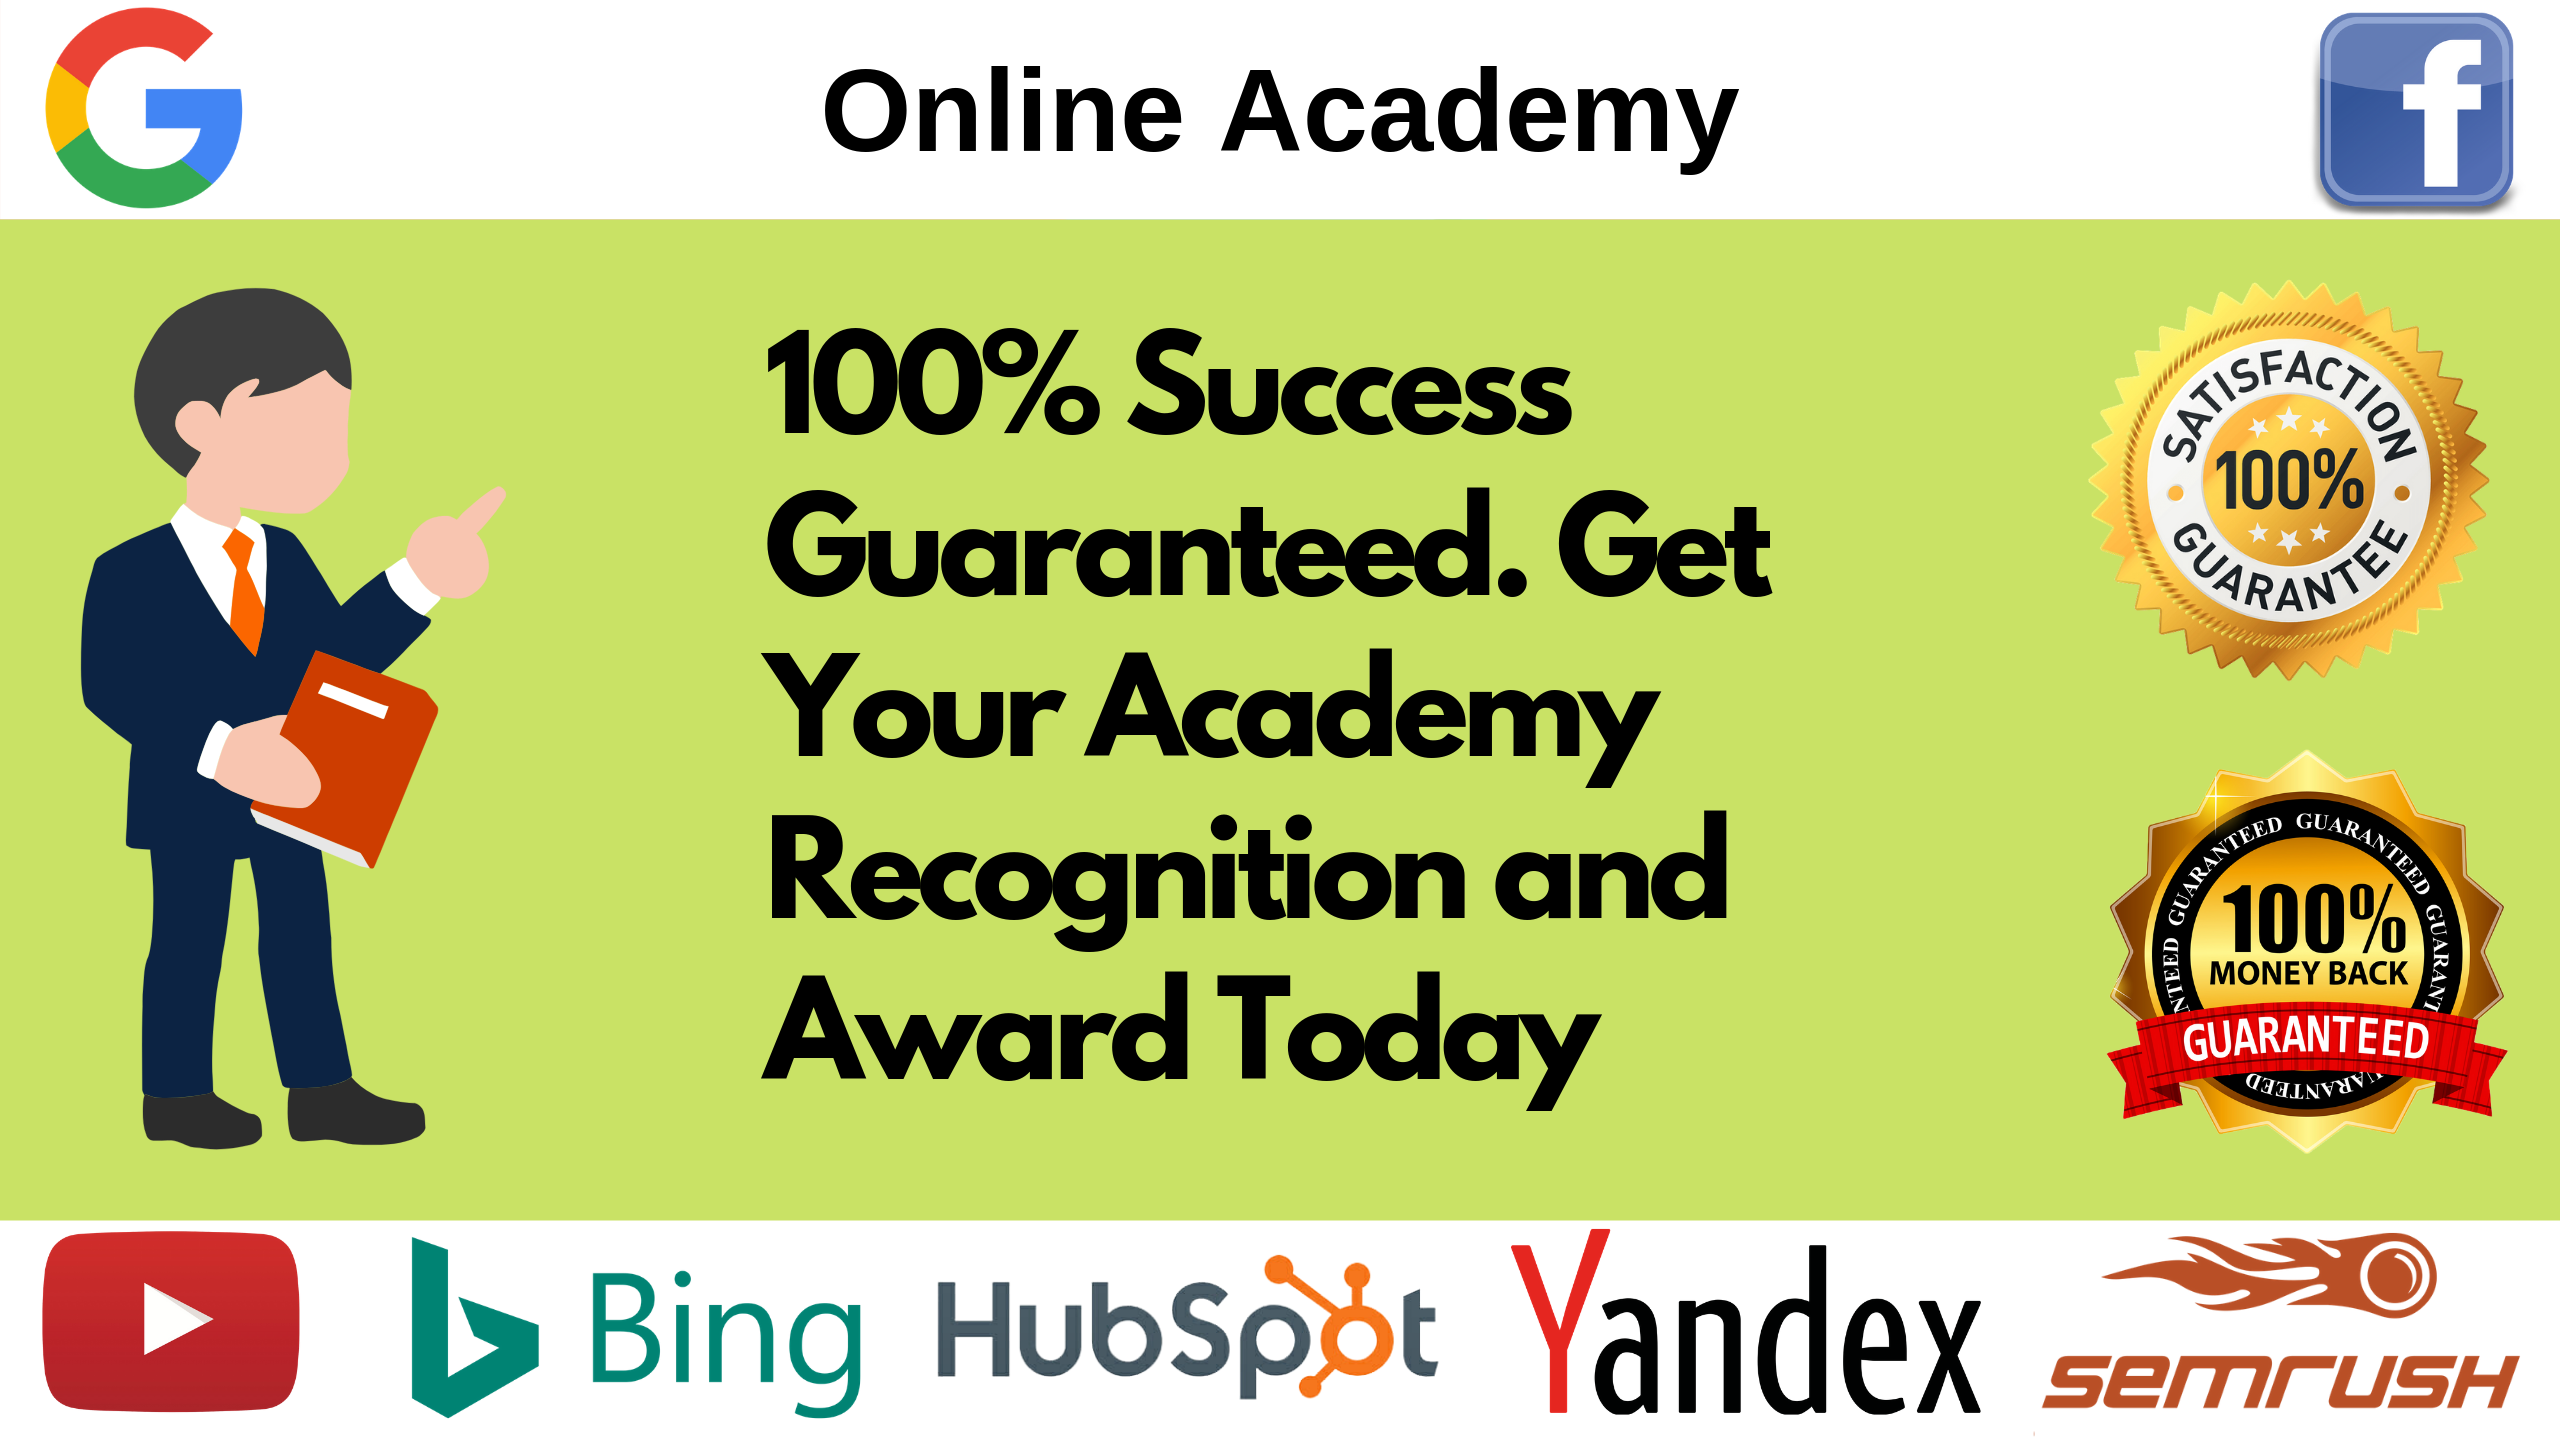 I will be your virtual assistant for your google,  bing,  youtube,  semrush academy success